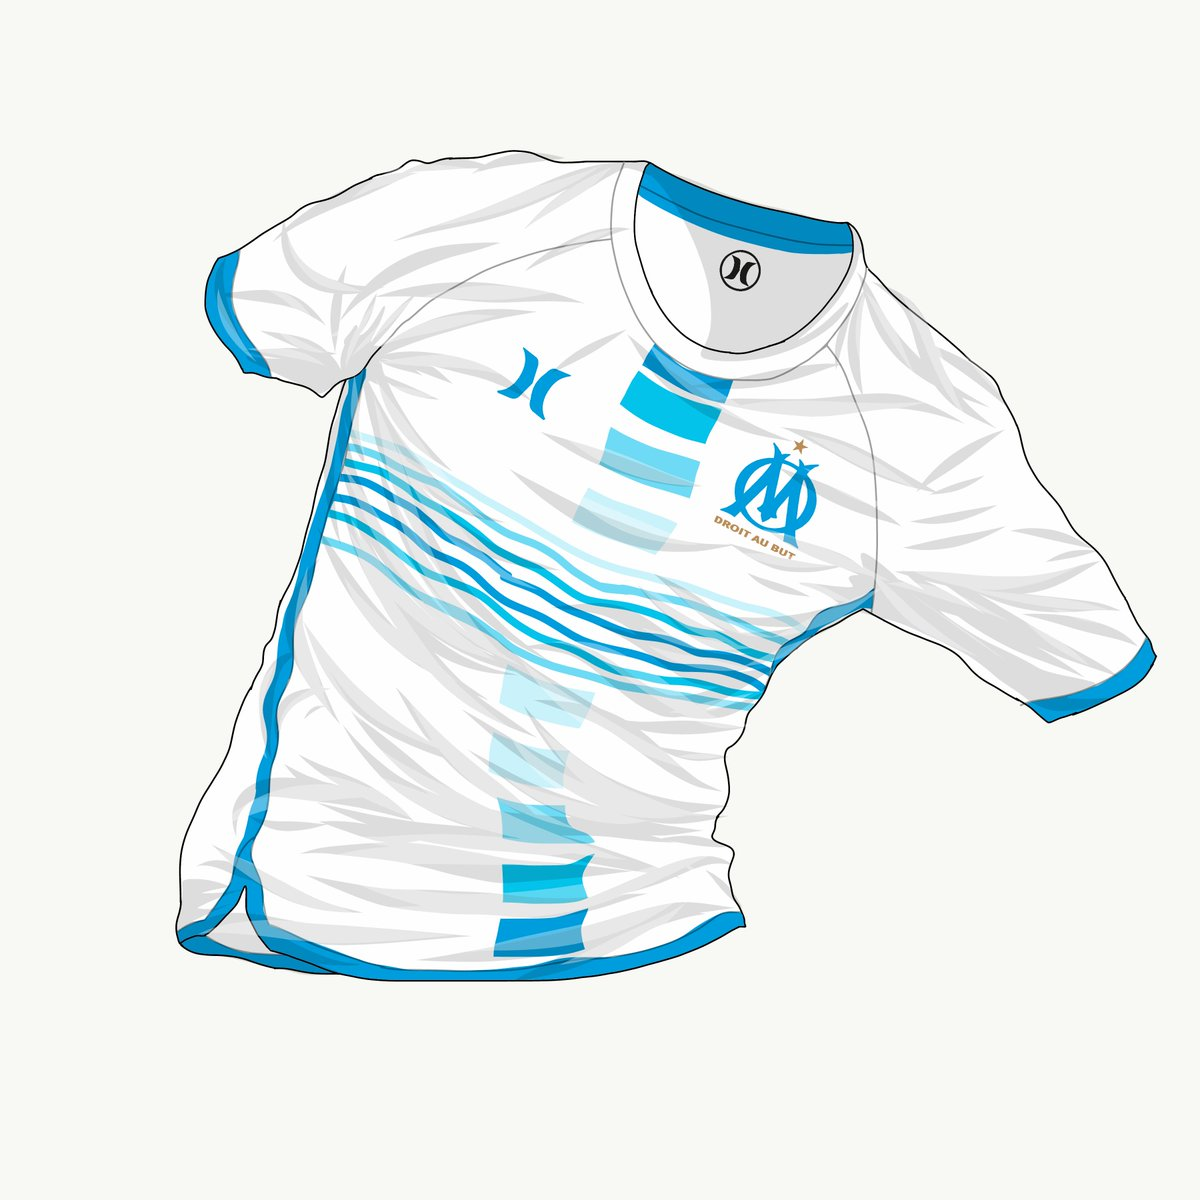 Last entry for #JuevesFantasy #Semana21 Olympique de Marseille x Hurley, with a lower cut inspired by board shorts @LaCasacaBlog @EleteTSC @marcadegol<br>http://pic.twitter.com/lPWx02aFhl